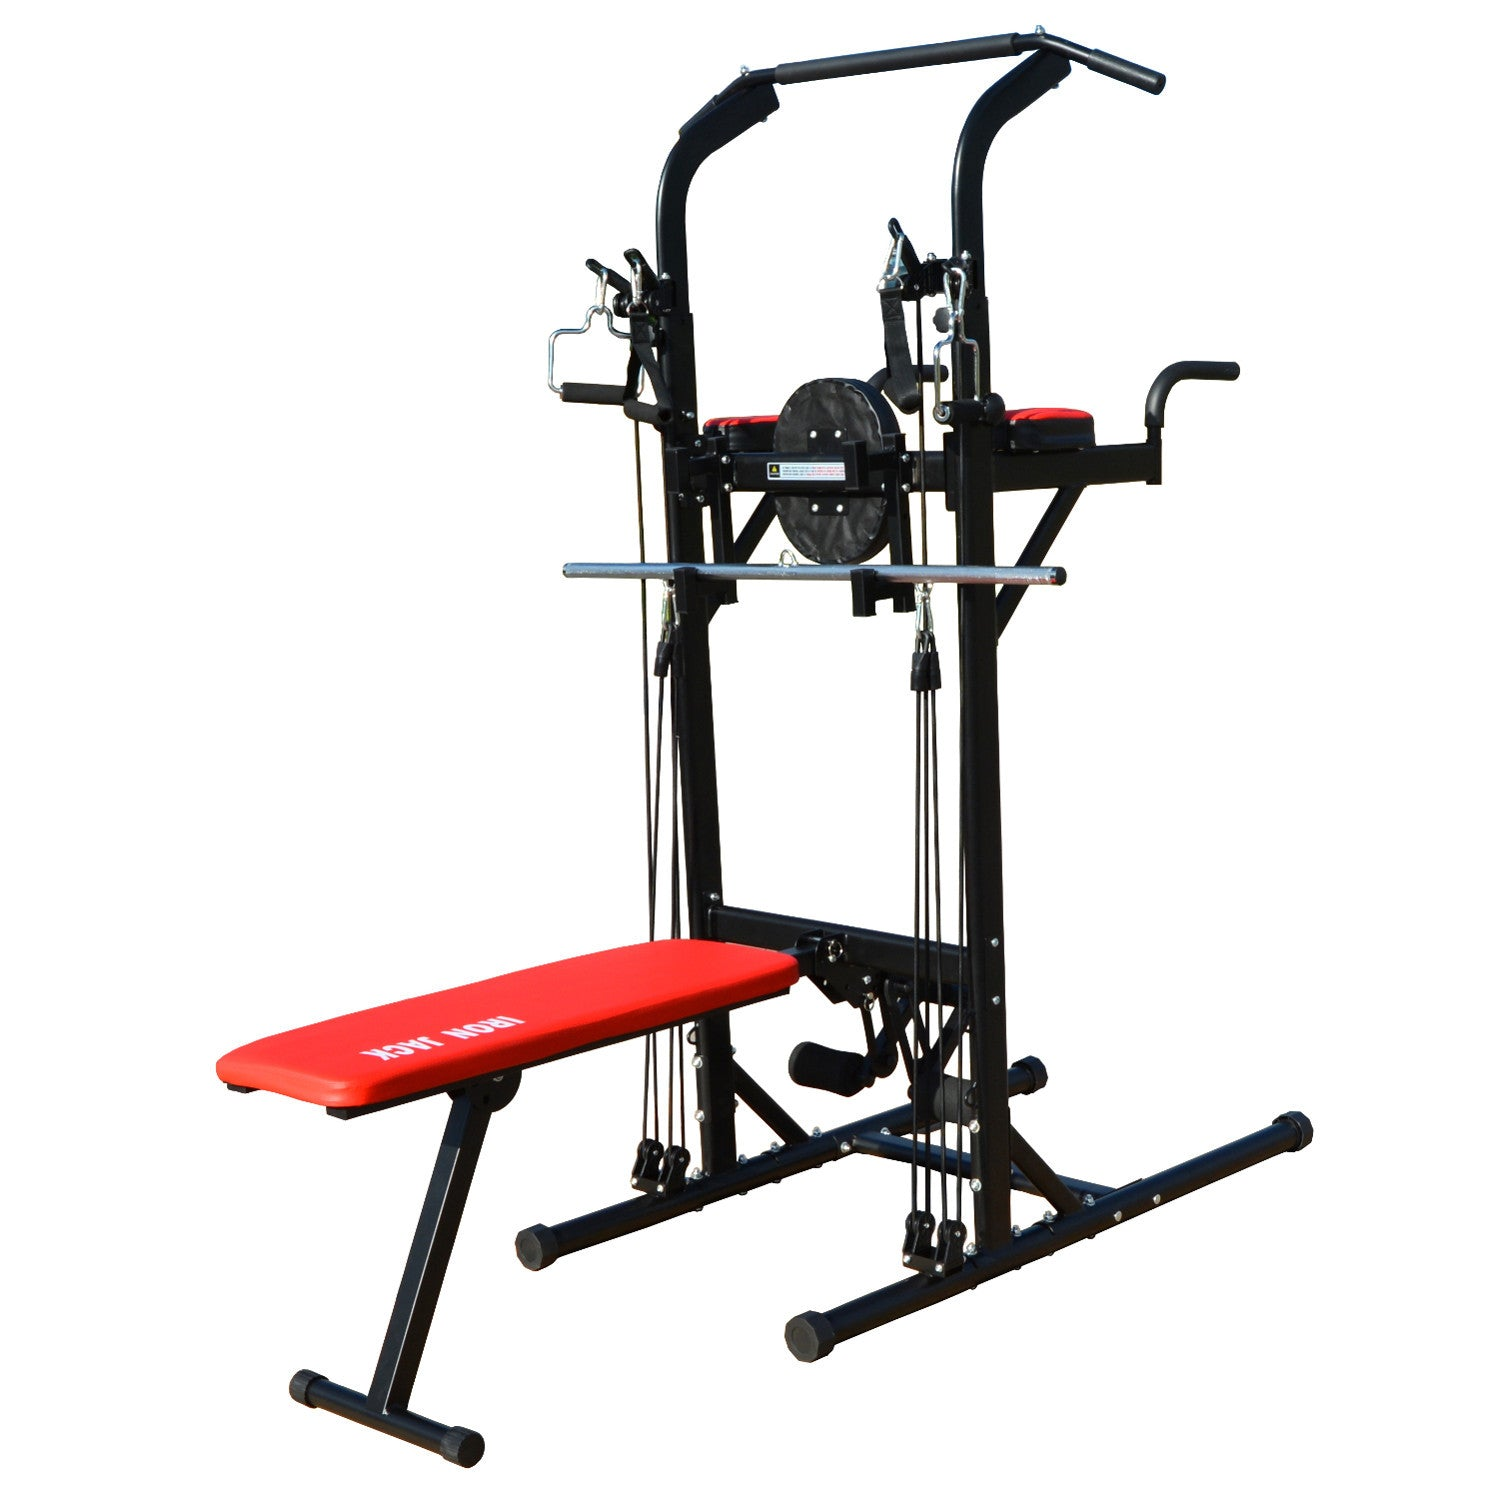 Iron Jack Muli Function Power Tower Work Out Exercise Station Pull